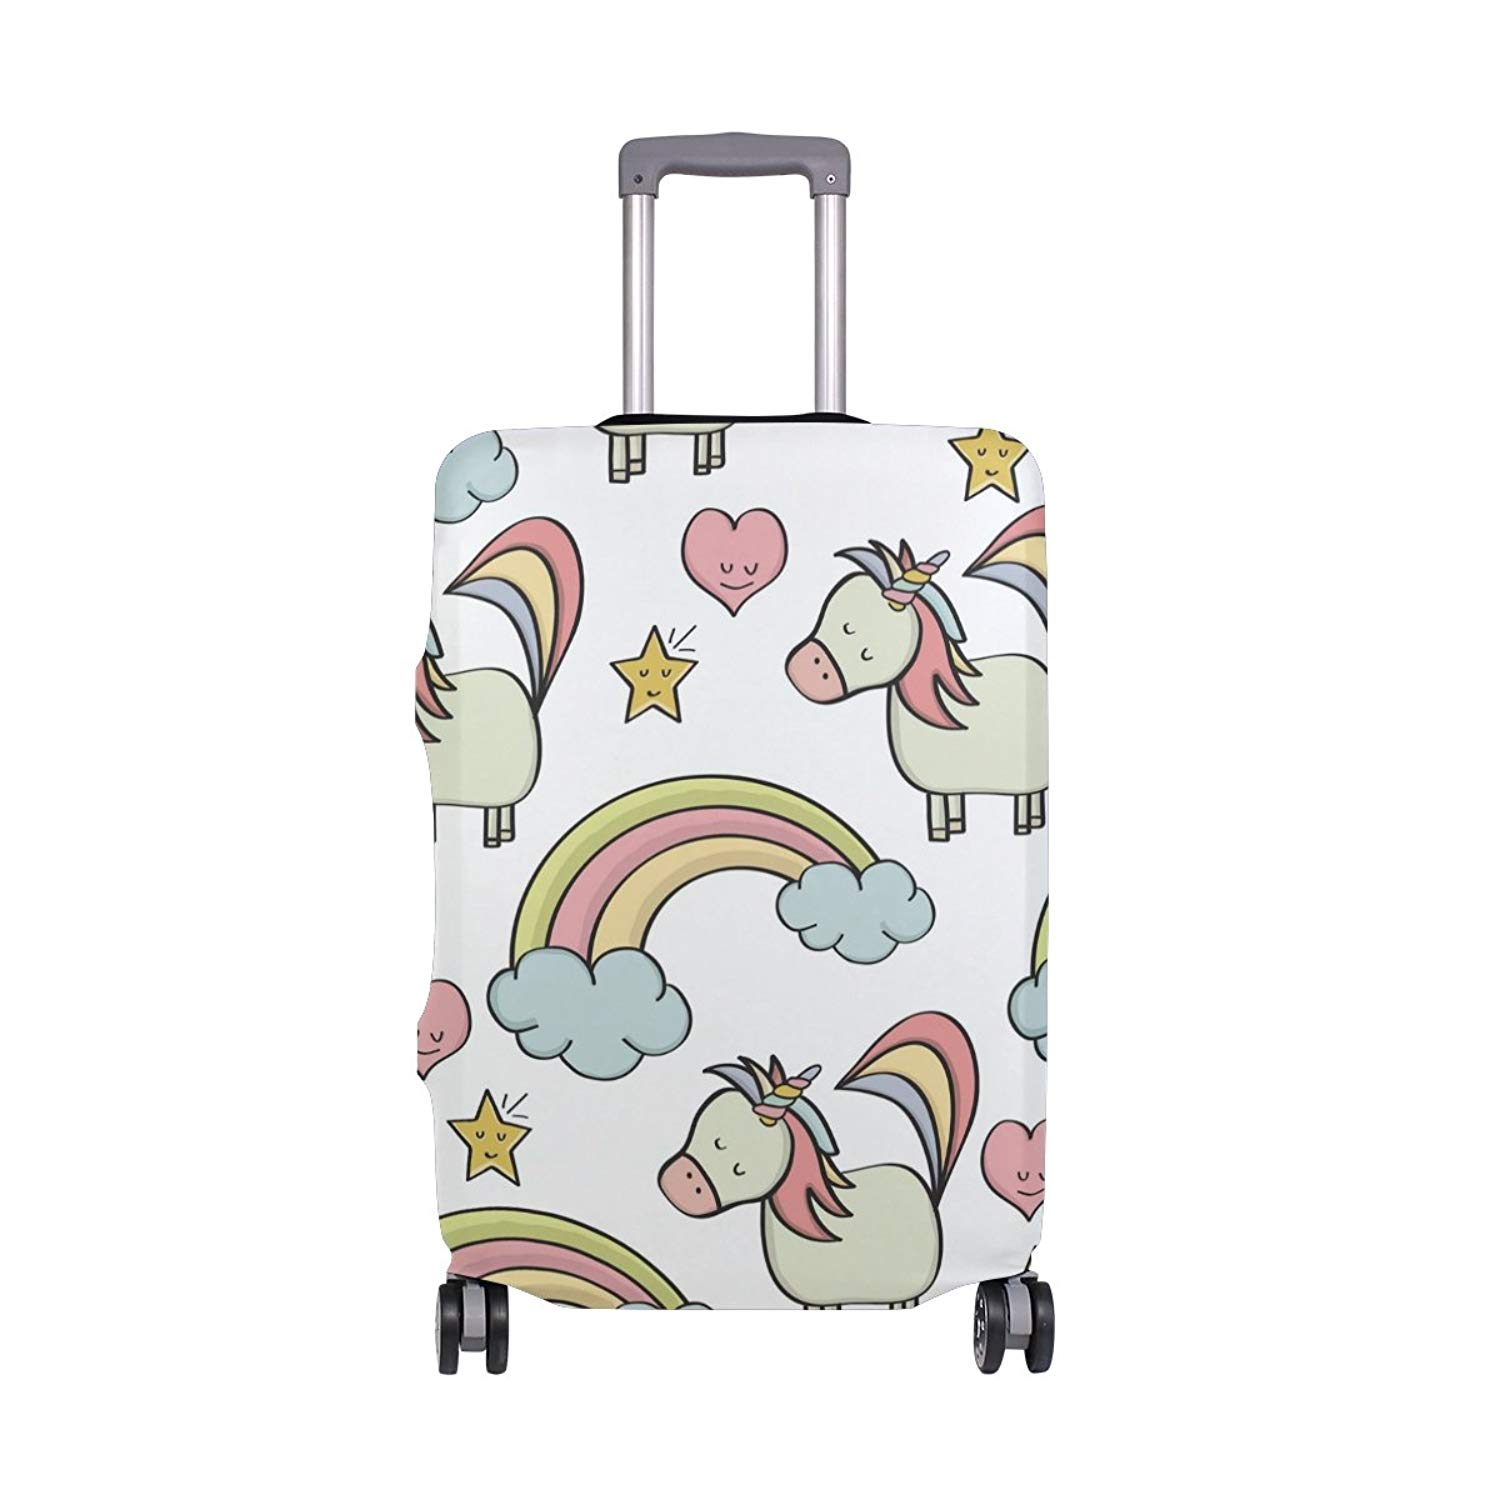 OREZI Luggage Protector Funny Unicorn Travel Luggage Elastic Cover Suitcase Washable and Durable Anti-Scratch Stretchy Case Cover Fits 18-32 Inches